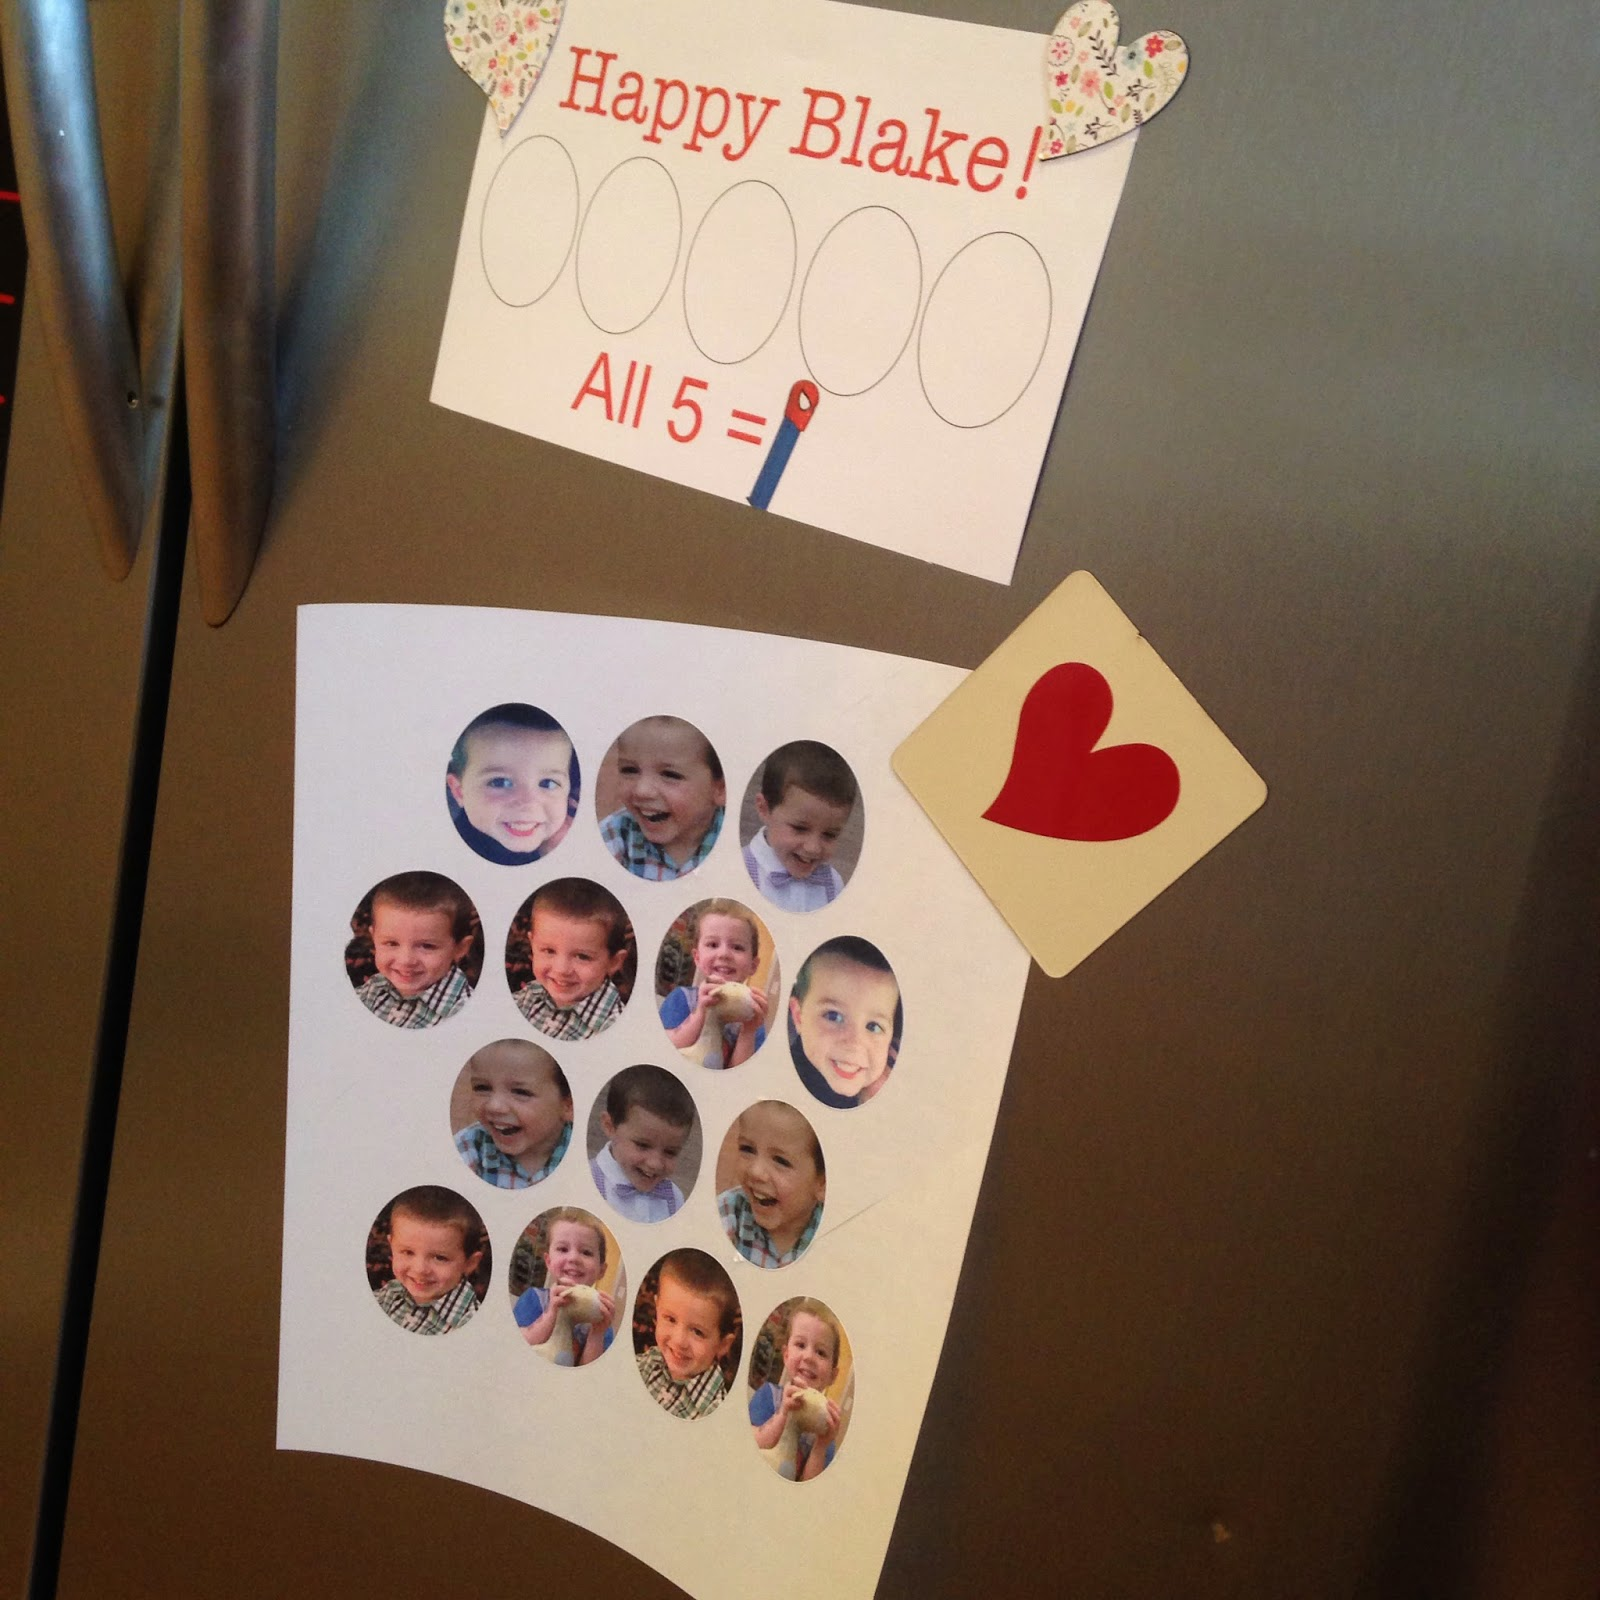 Silhouette tutorial, DIY, do it yourself, personalized, photo stickers